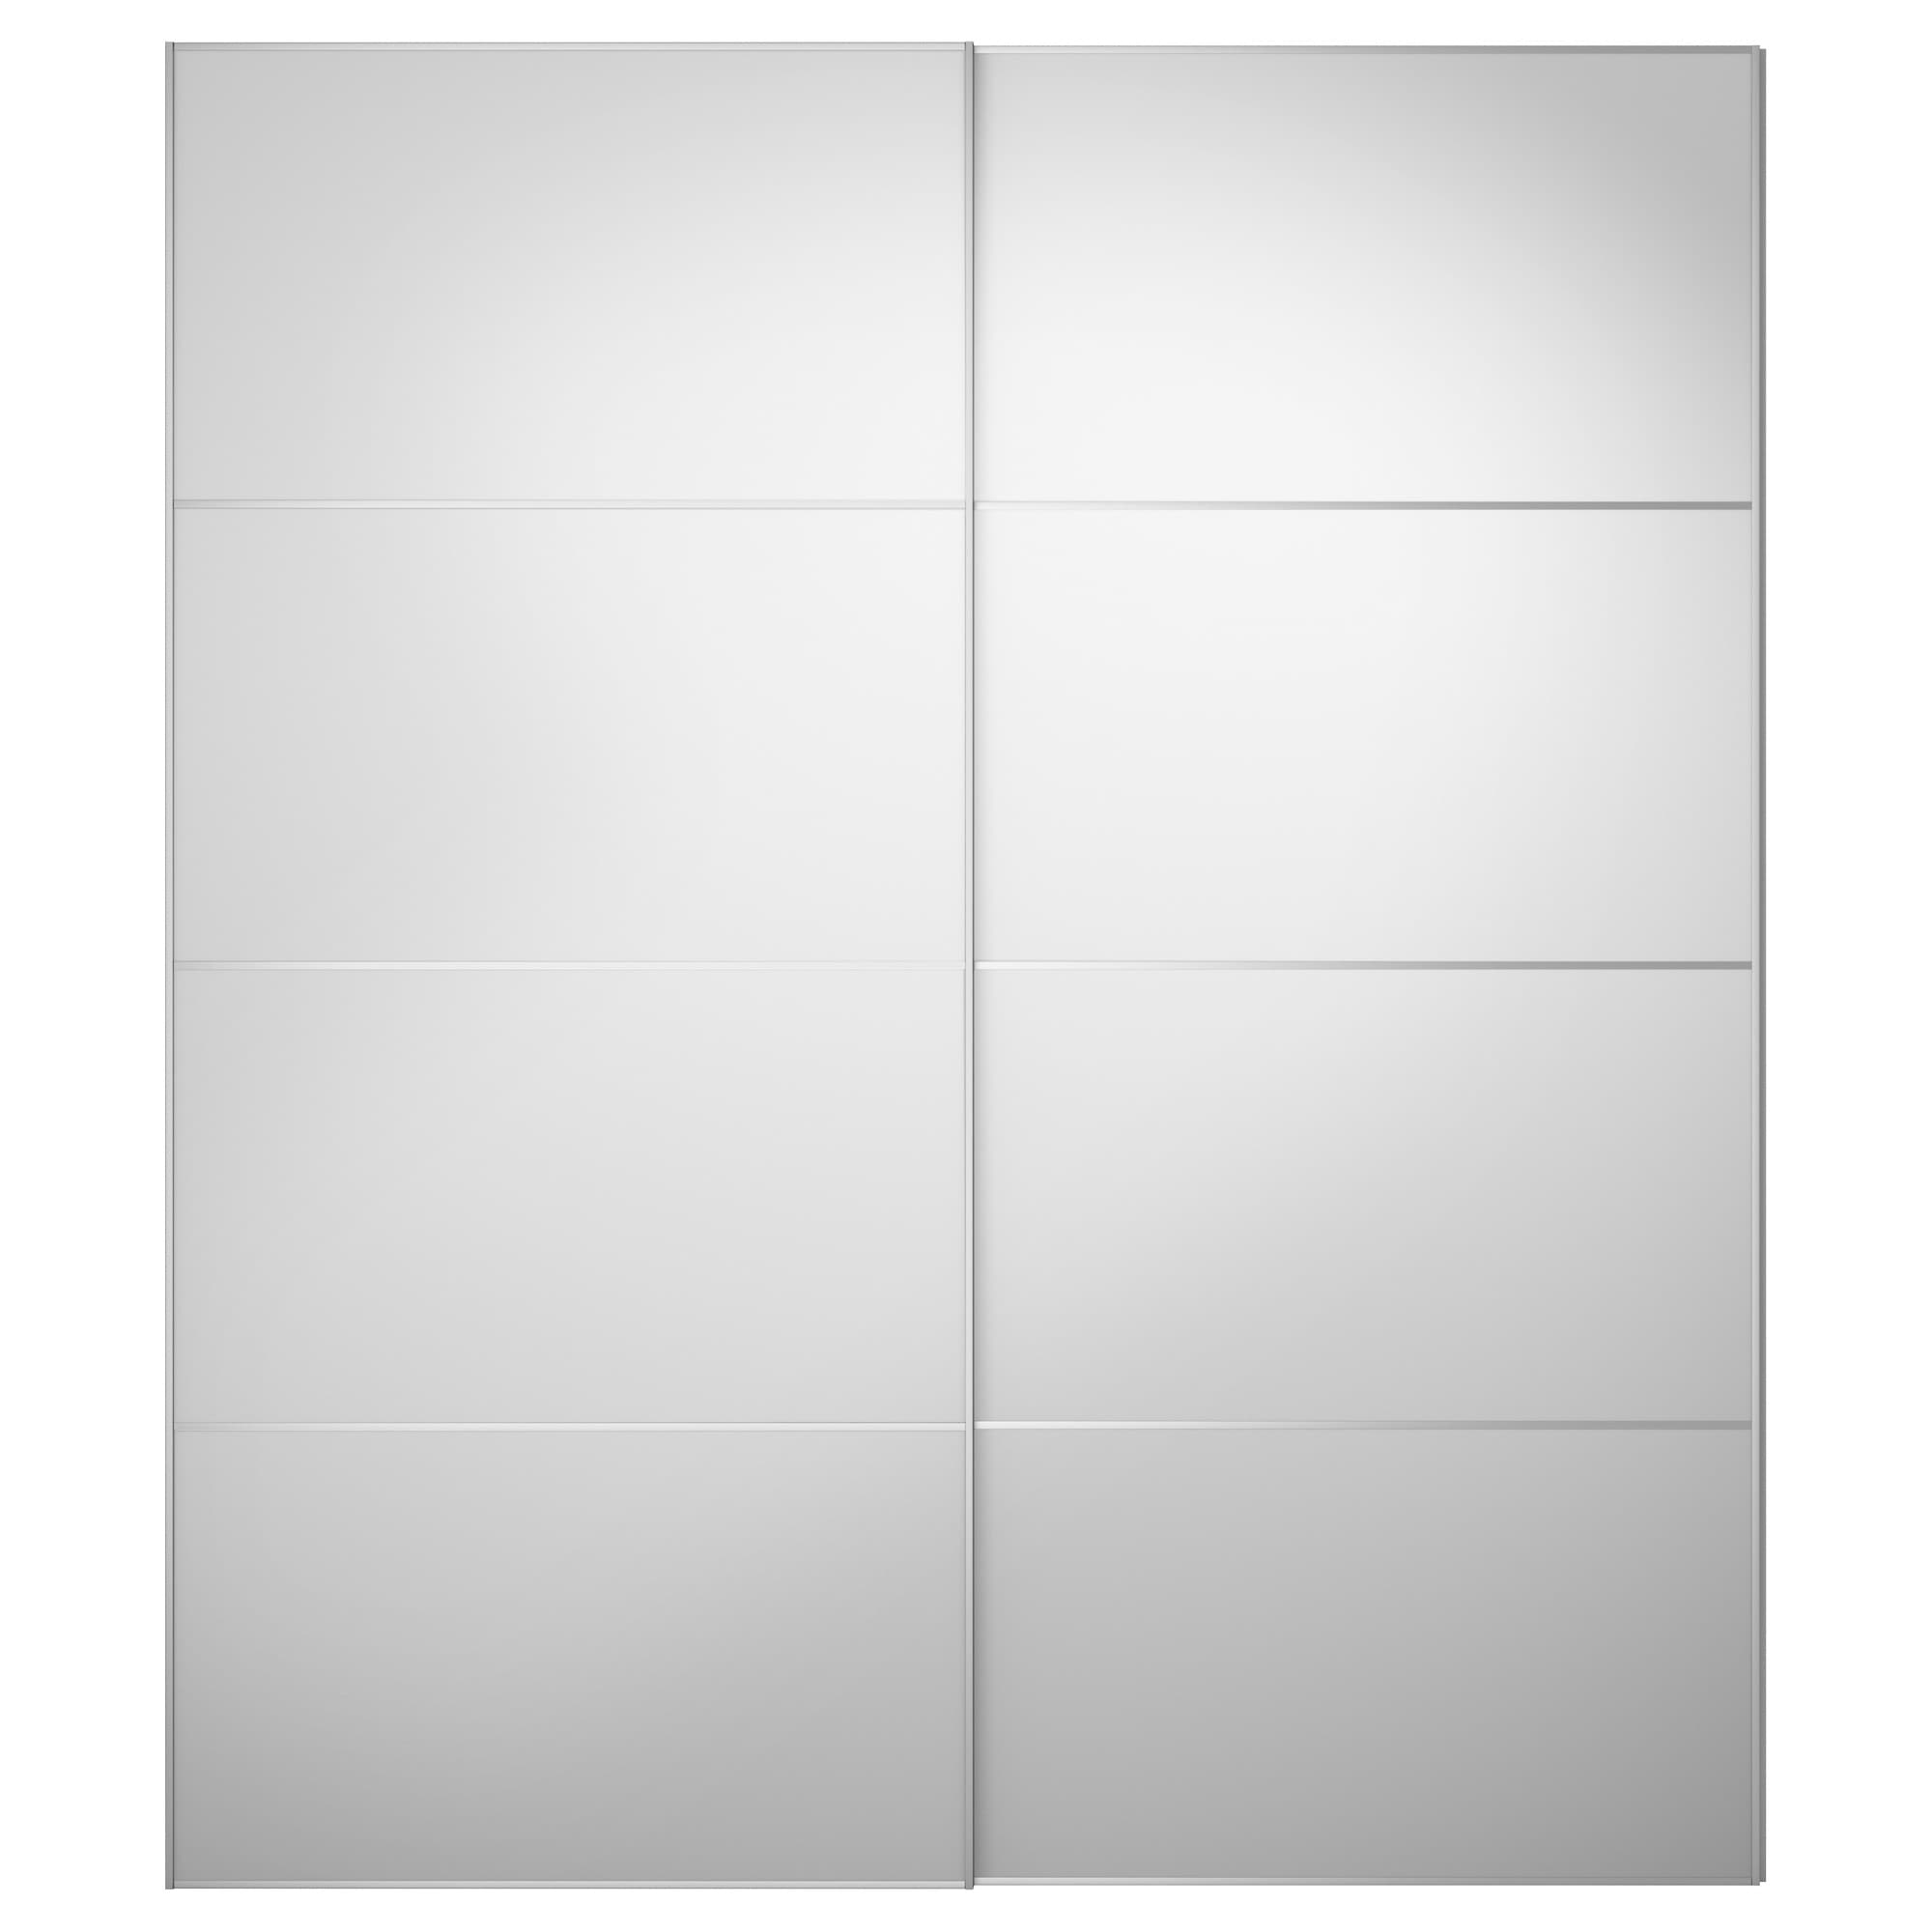 3 panel sliding closet doors - Auli Pair Of Sliding Doors Mirror Glass Width 78 3 4 Built